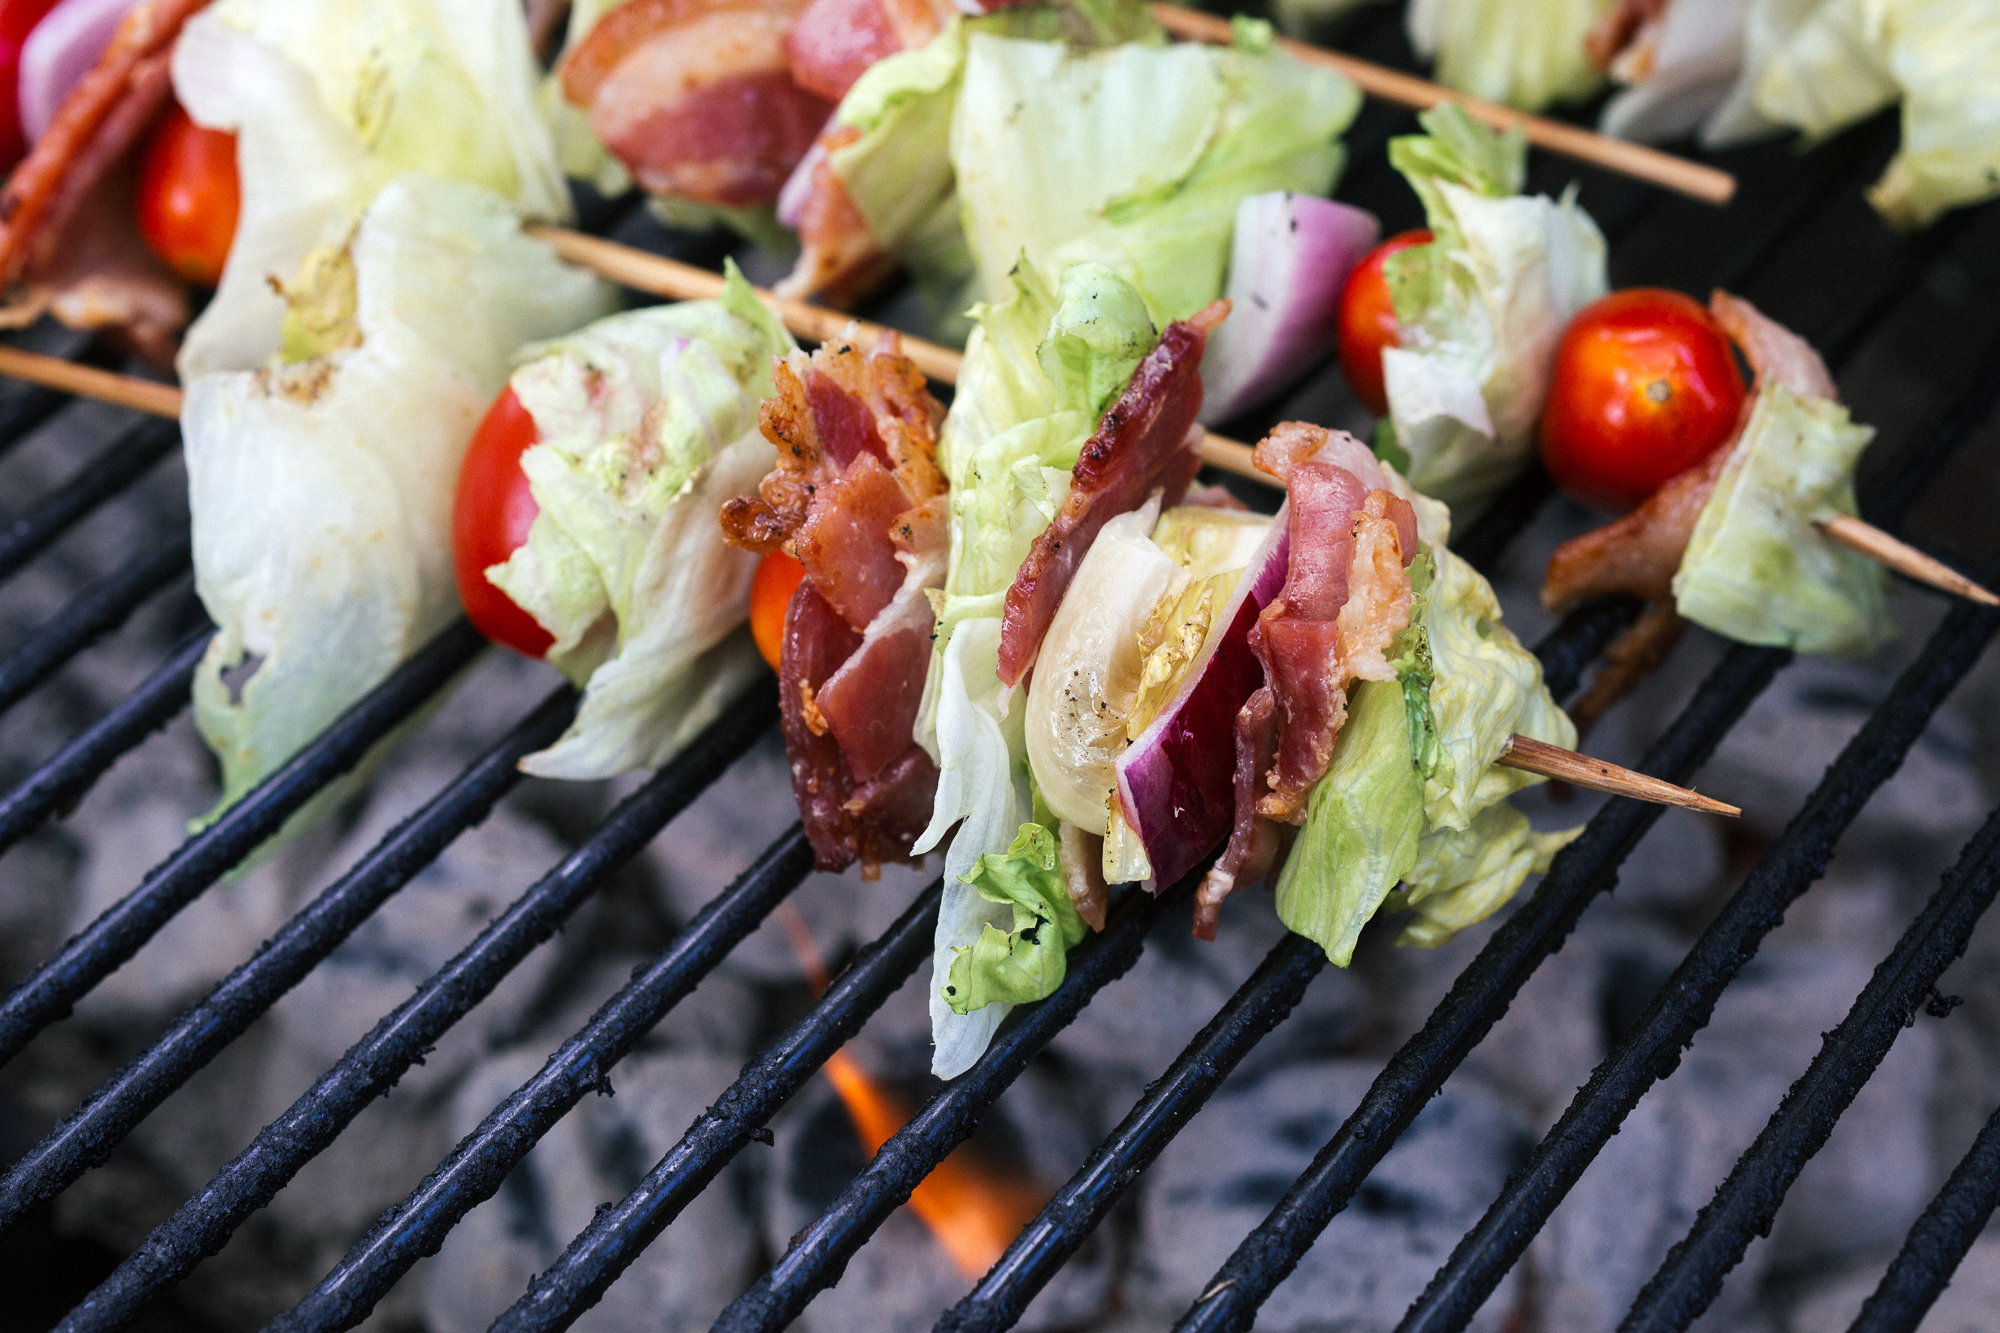 grilled wedge salad skewers on the grill